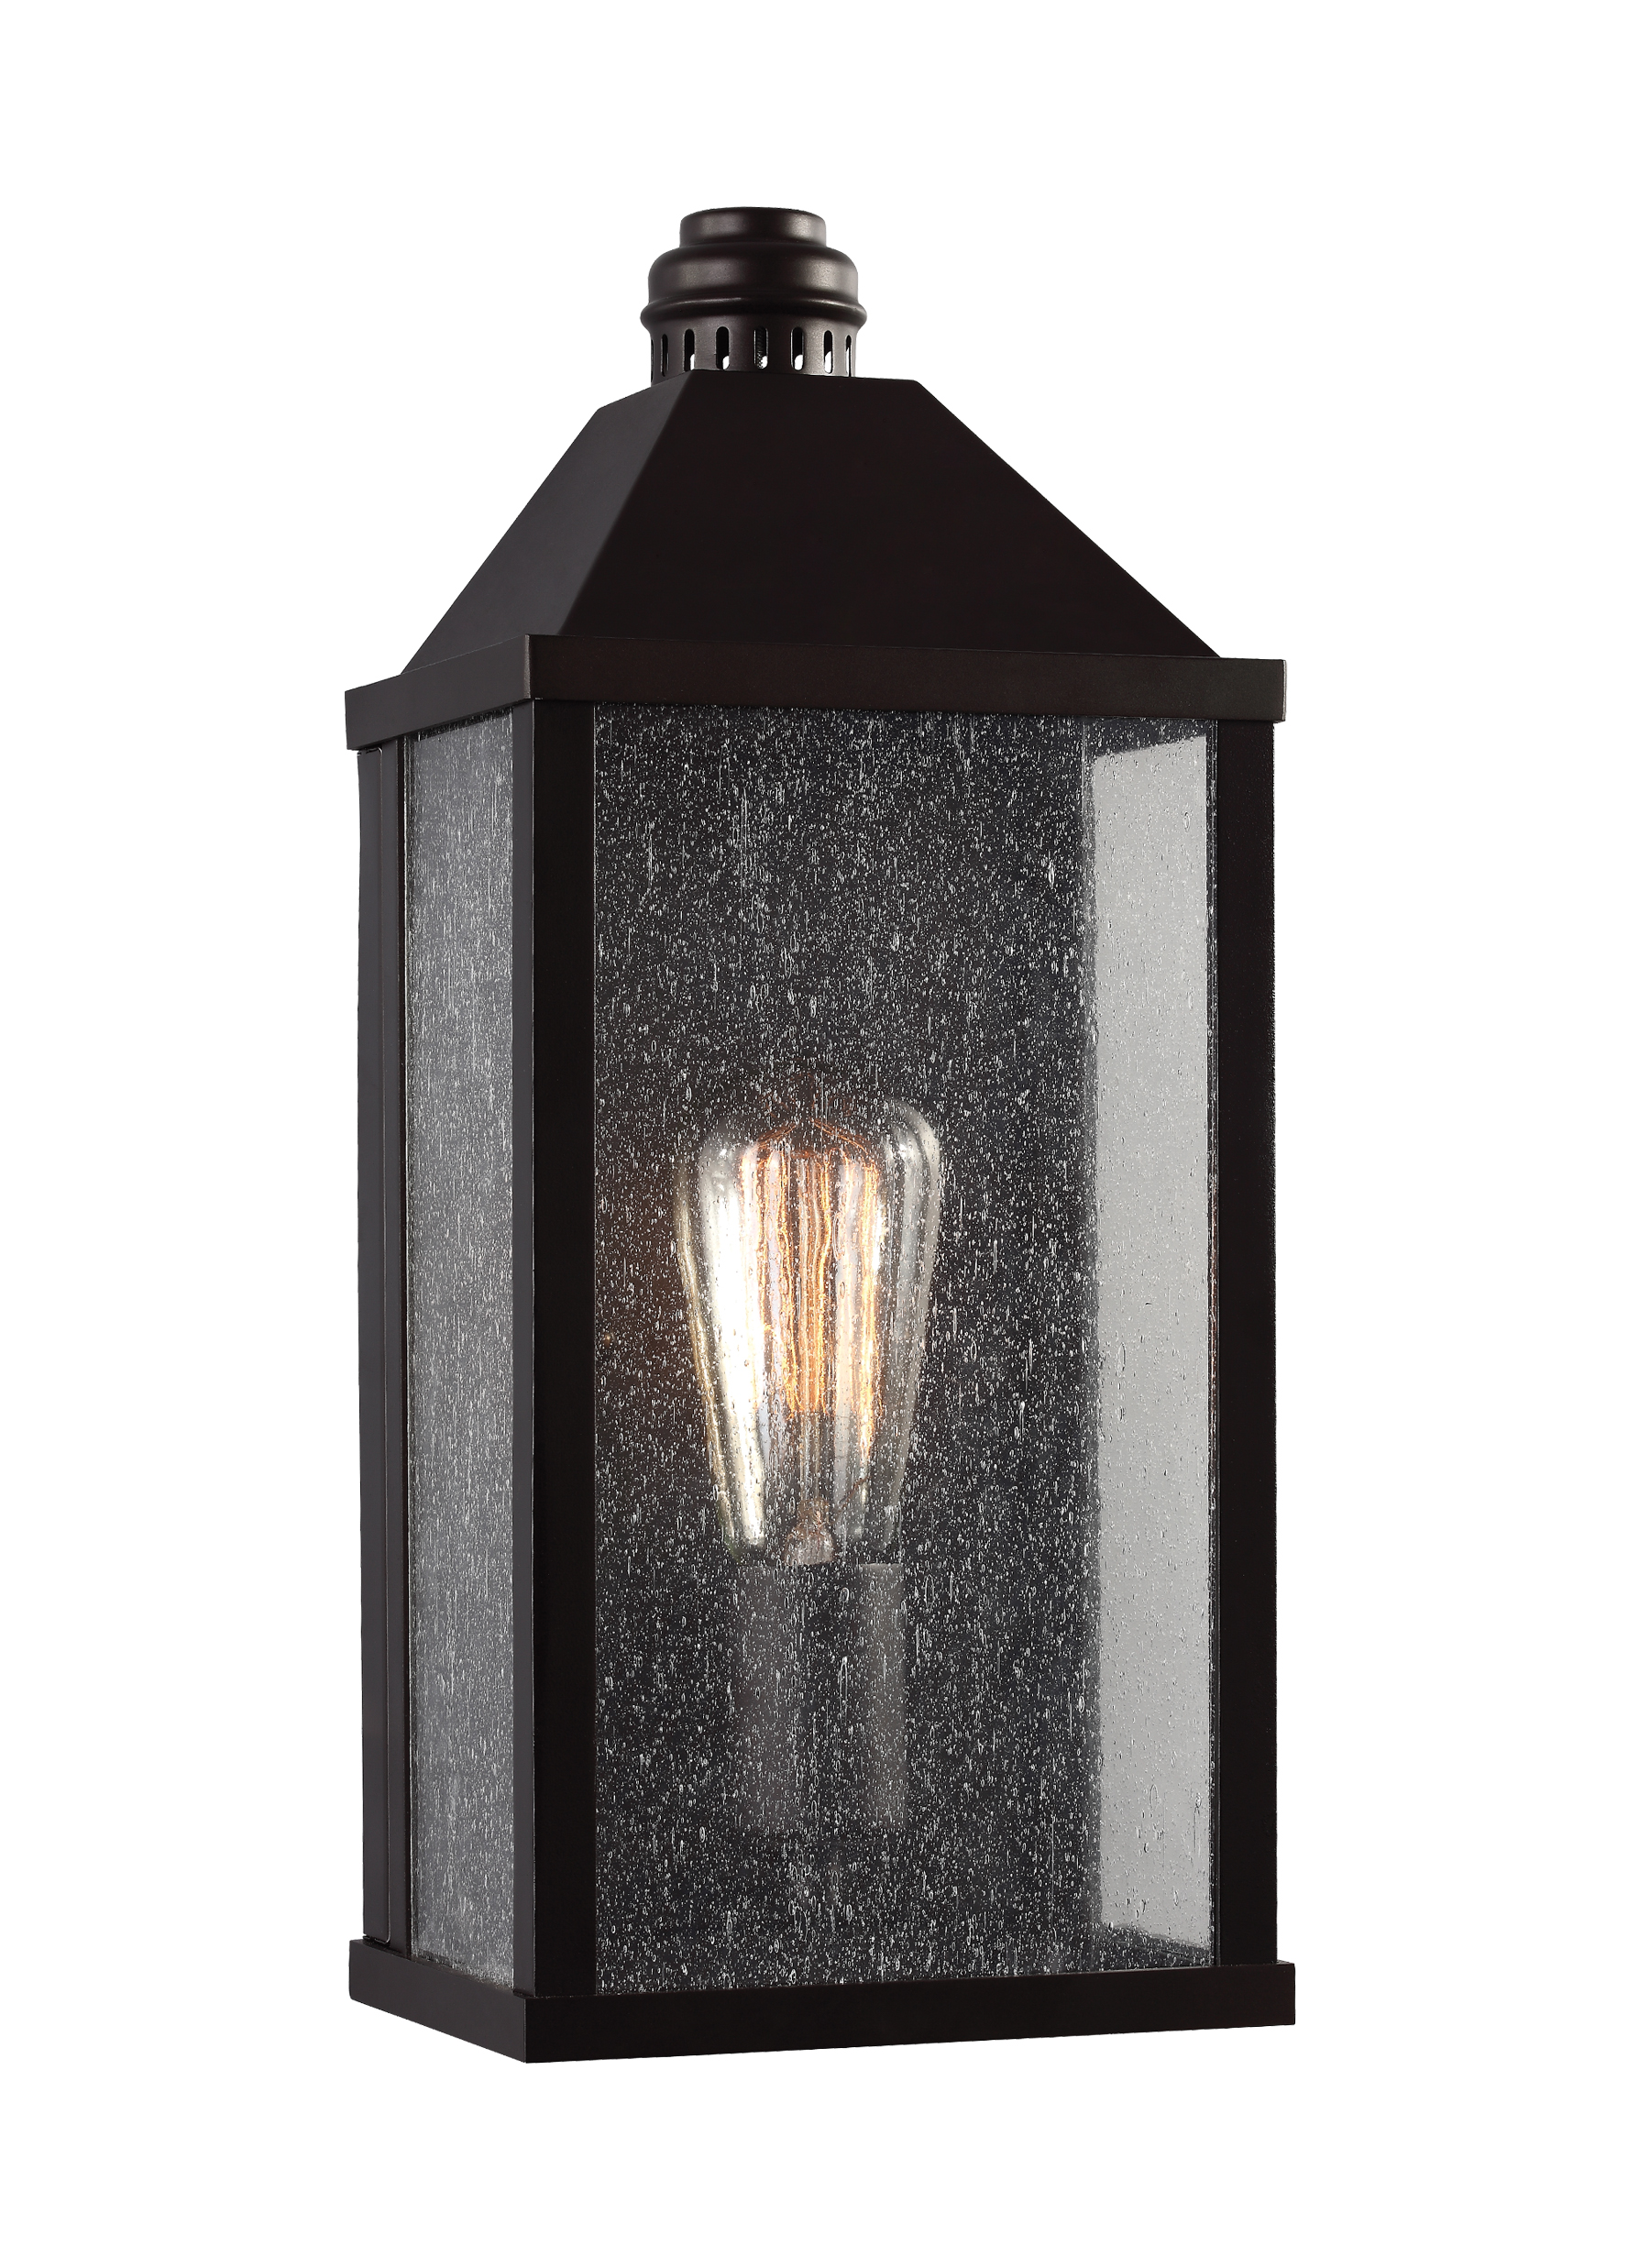 OL18000ORB,1 - Light Outdoor Wall Sconce,Oil Rubbed Bronze